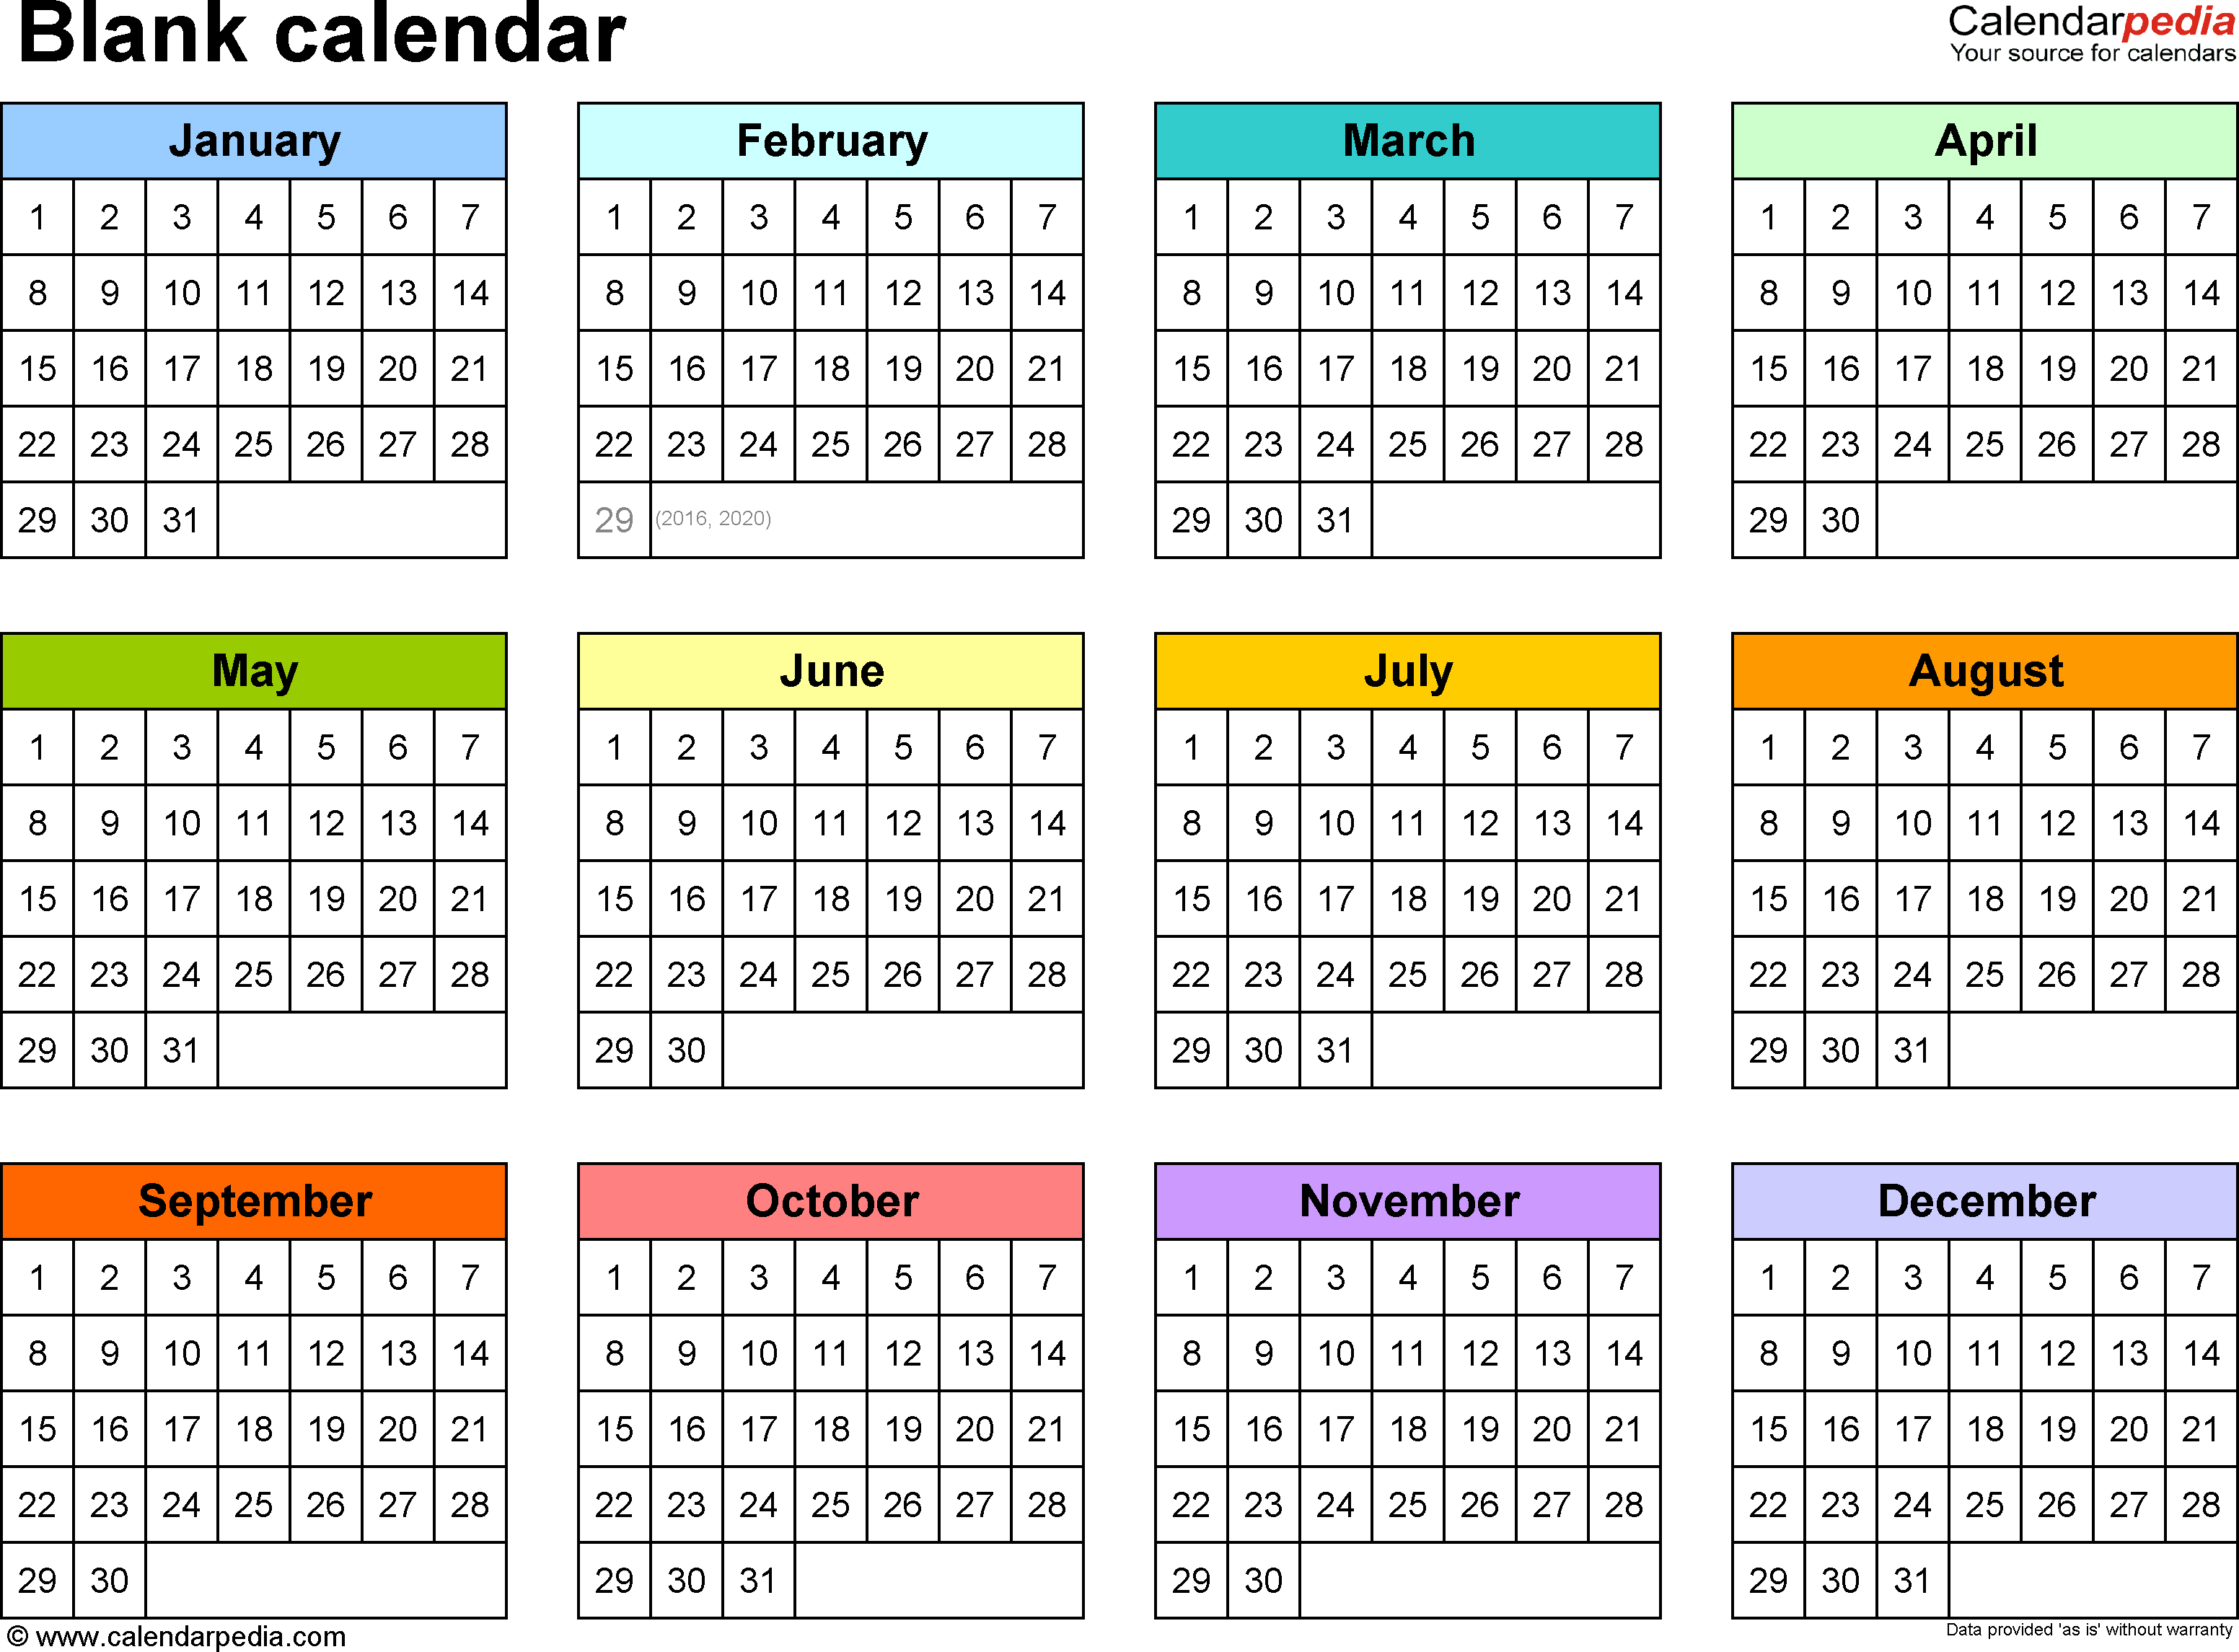 Blank Calendar - 9 Free Printable Microsoft Word Templates within Blank Year Calendar On One Page